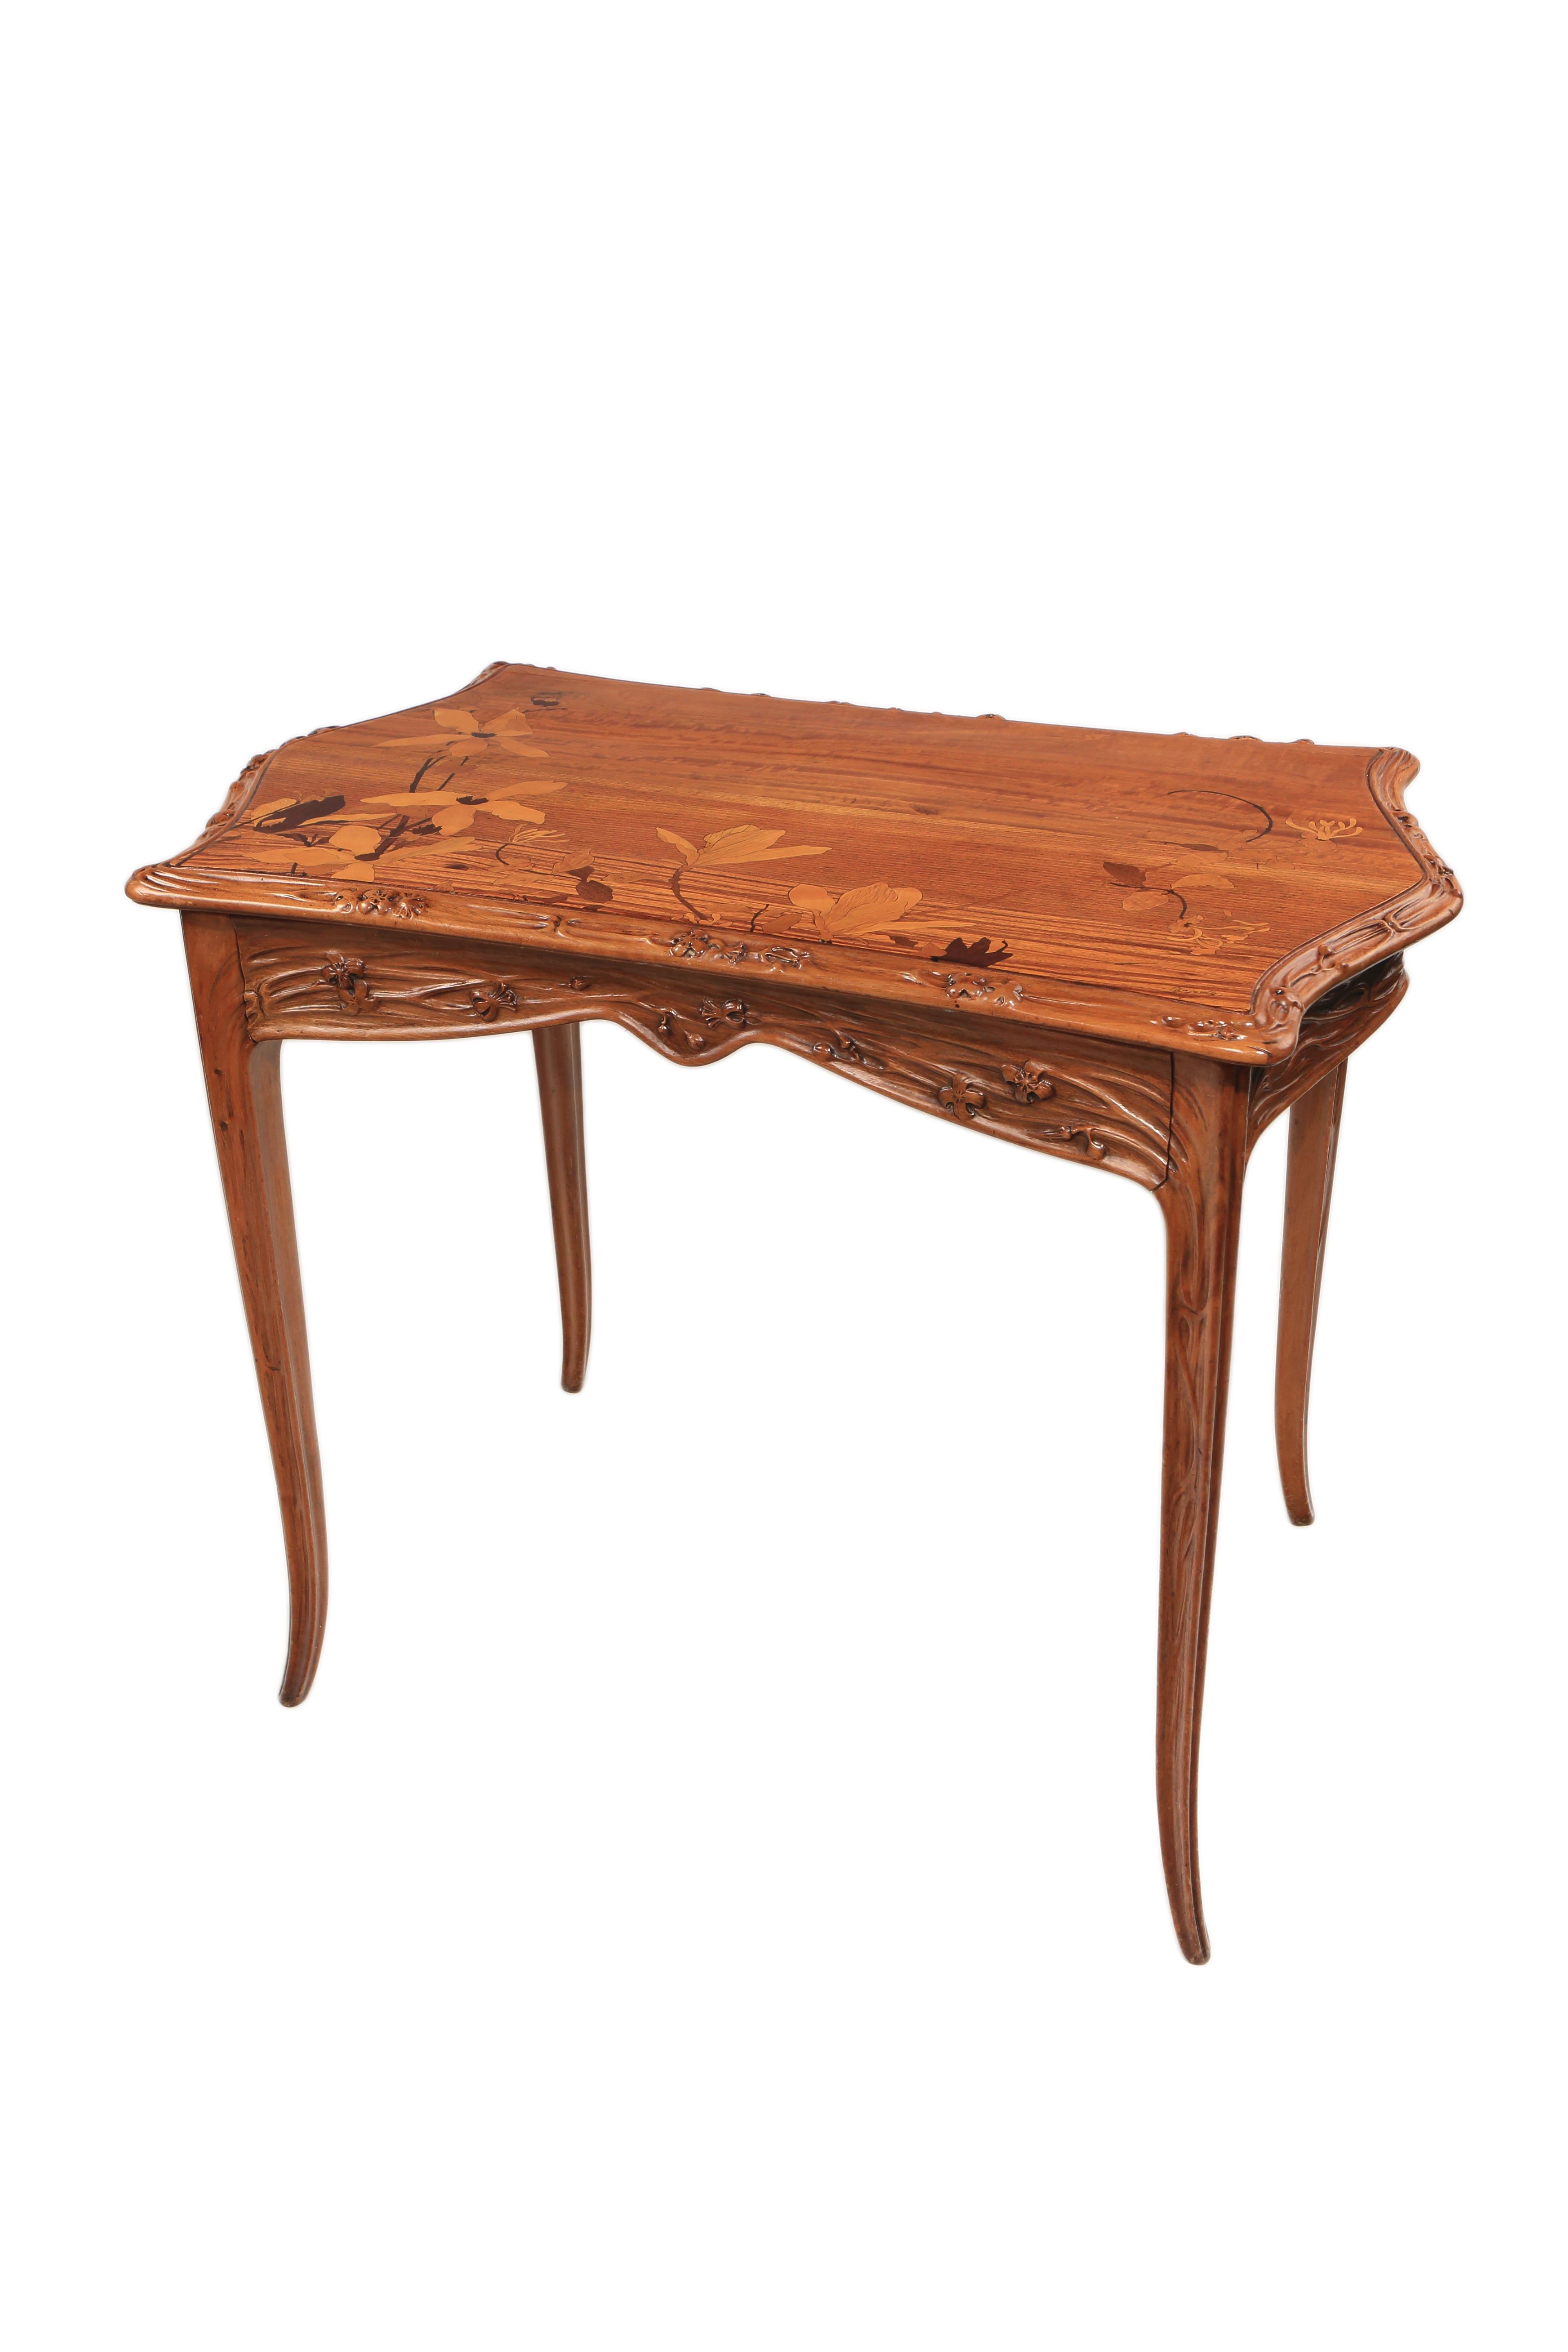 "French Art Nouveau ""Magnolia"" Desk by, Louis Majorelle"